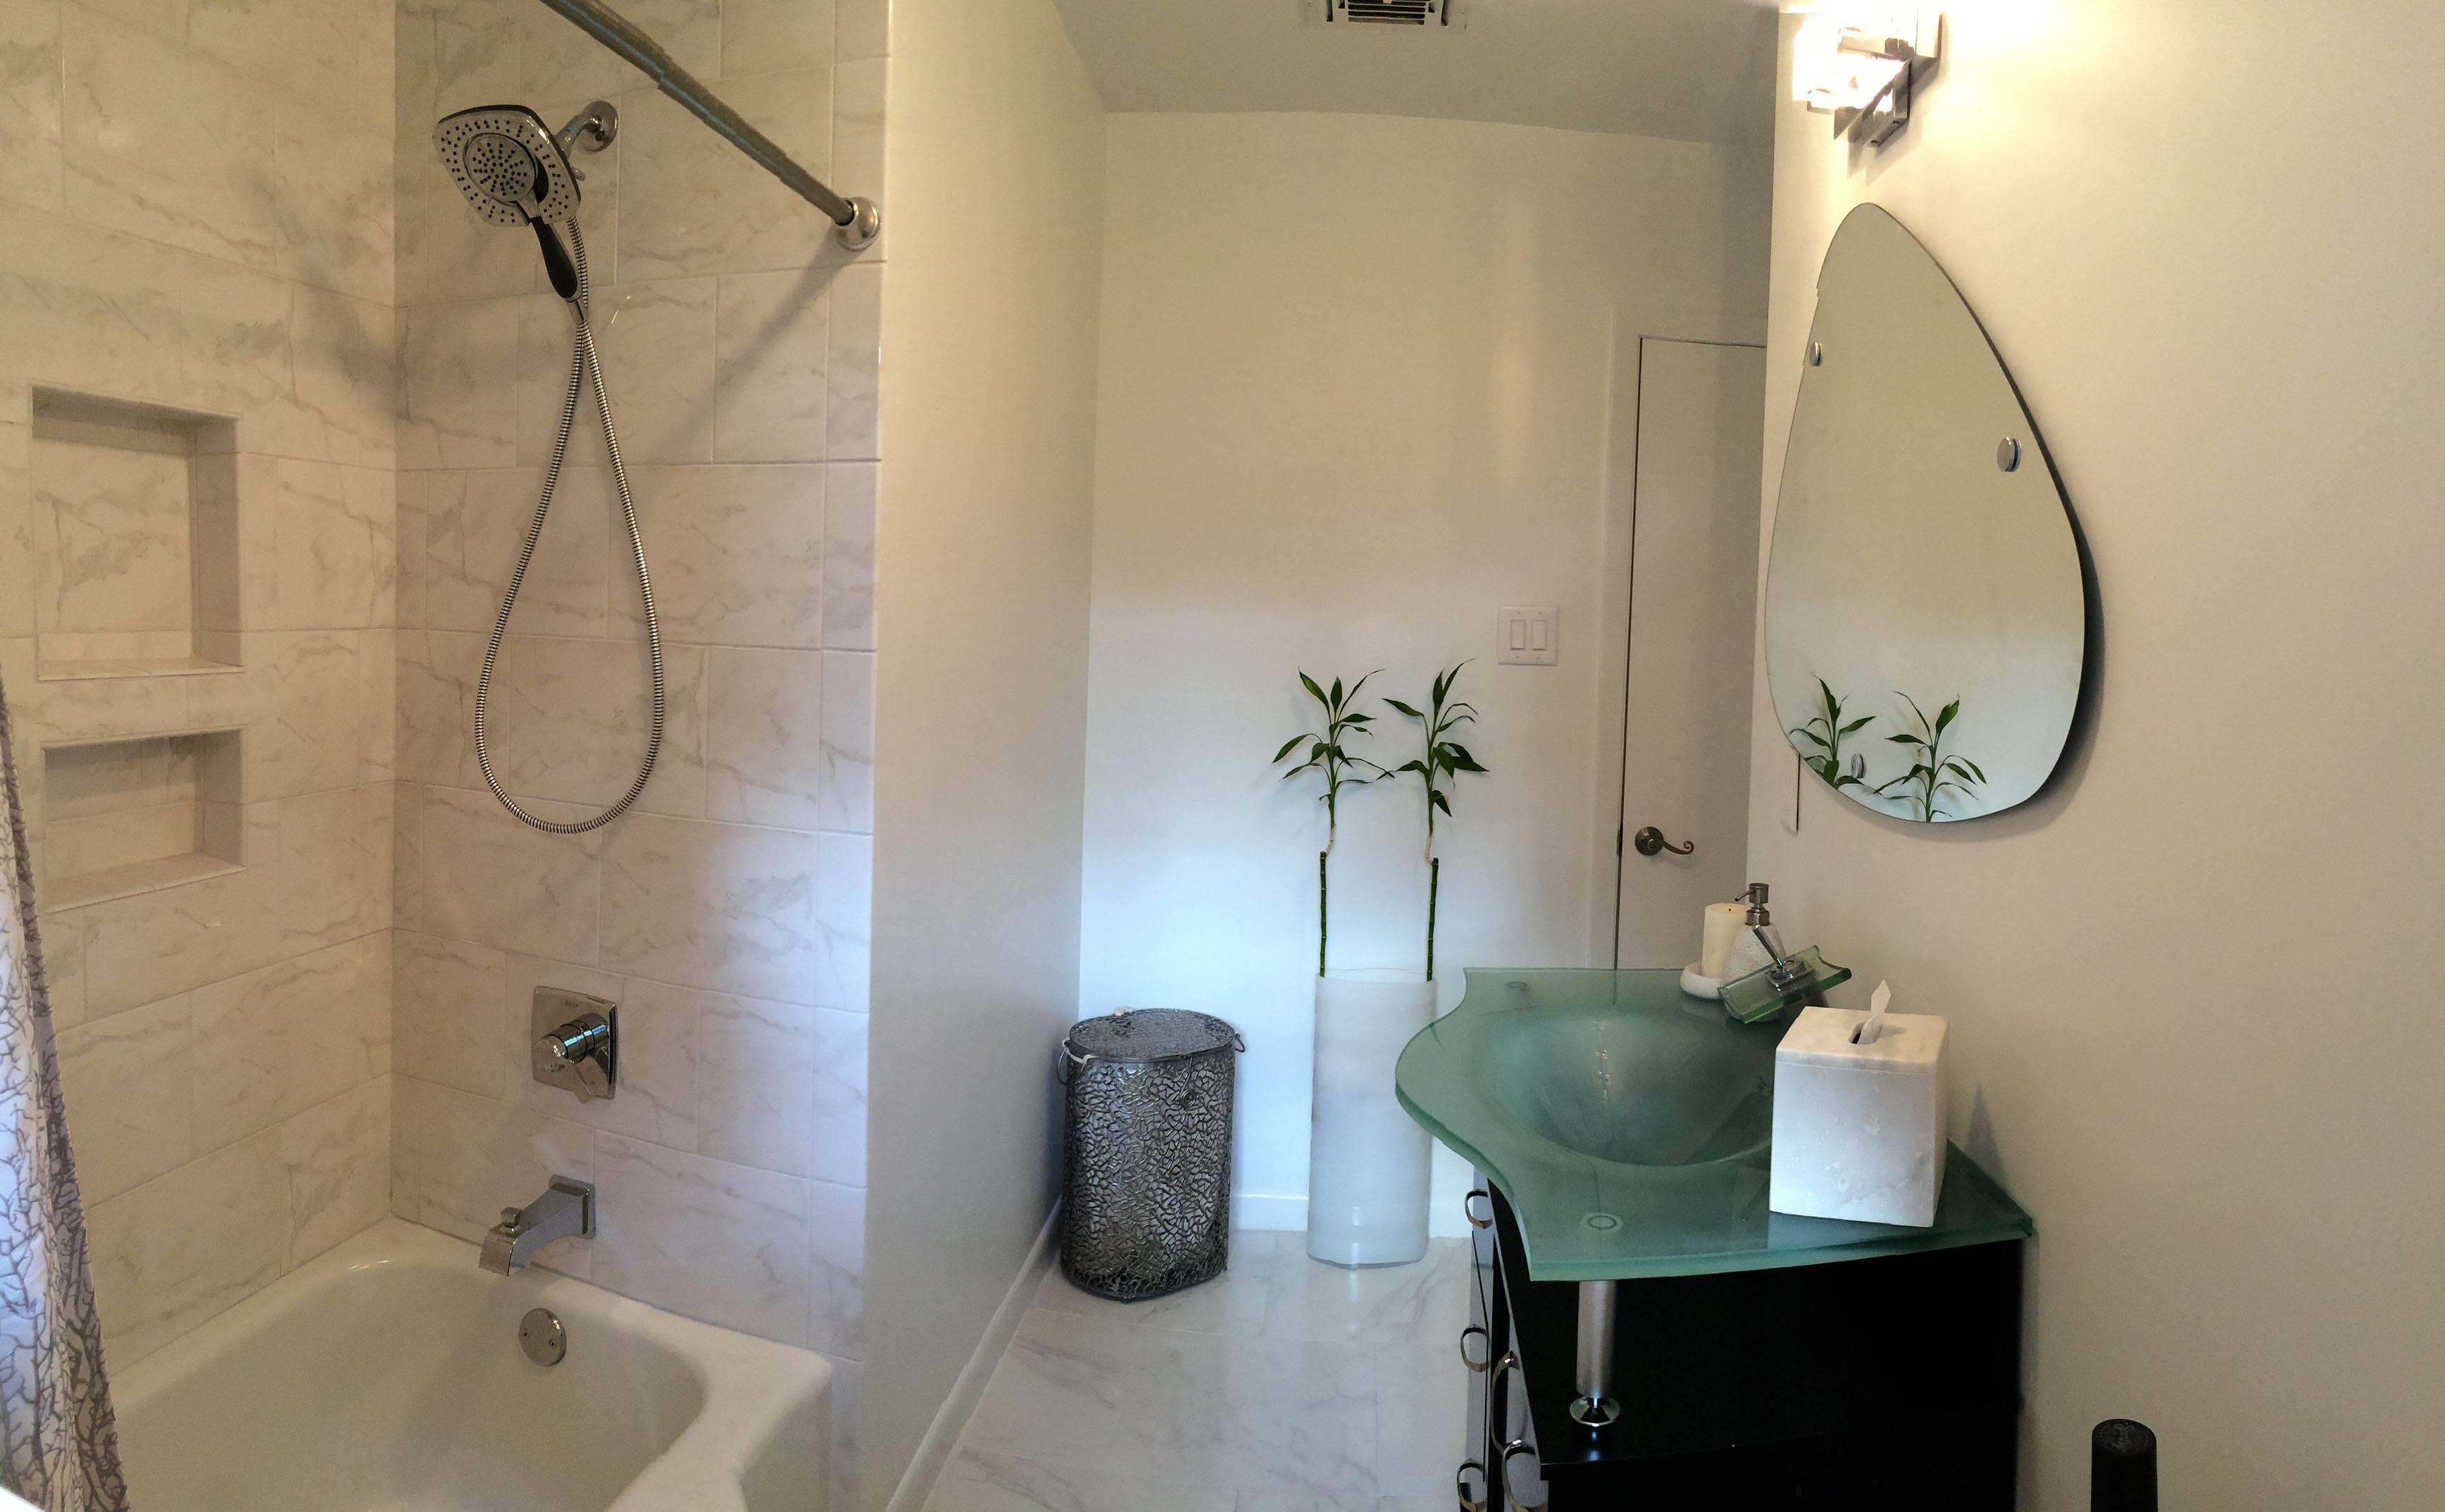 luxury nj renovation in columbus inside ohio remodeling contractor design bathroom remodel phoenix photos of contractors